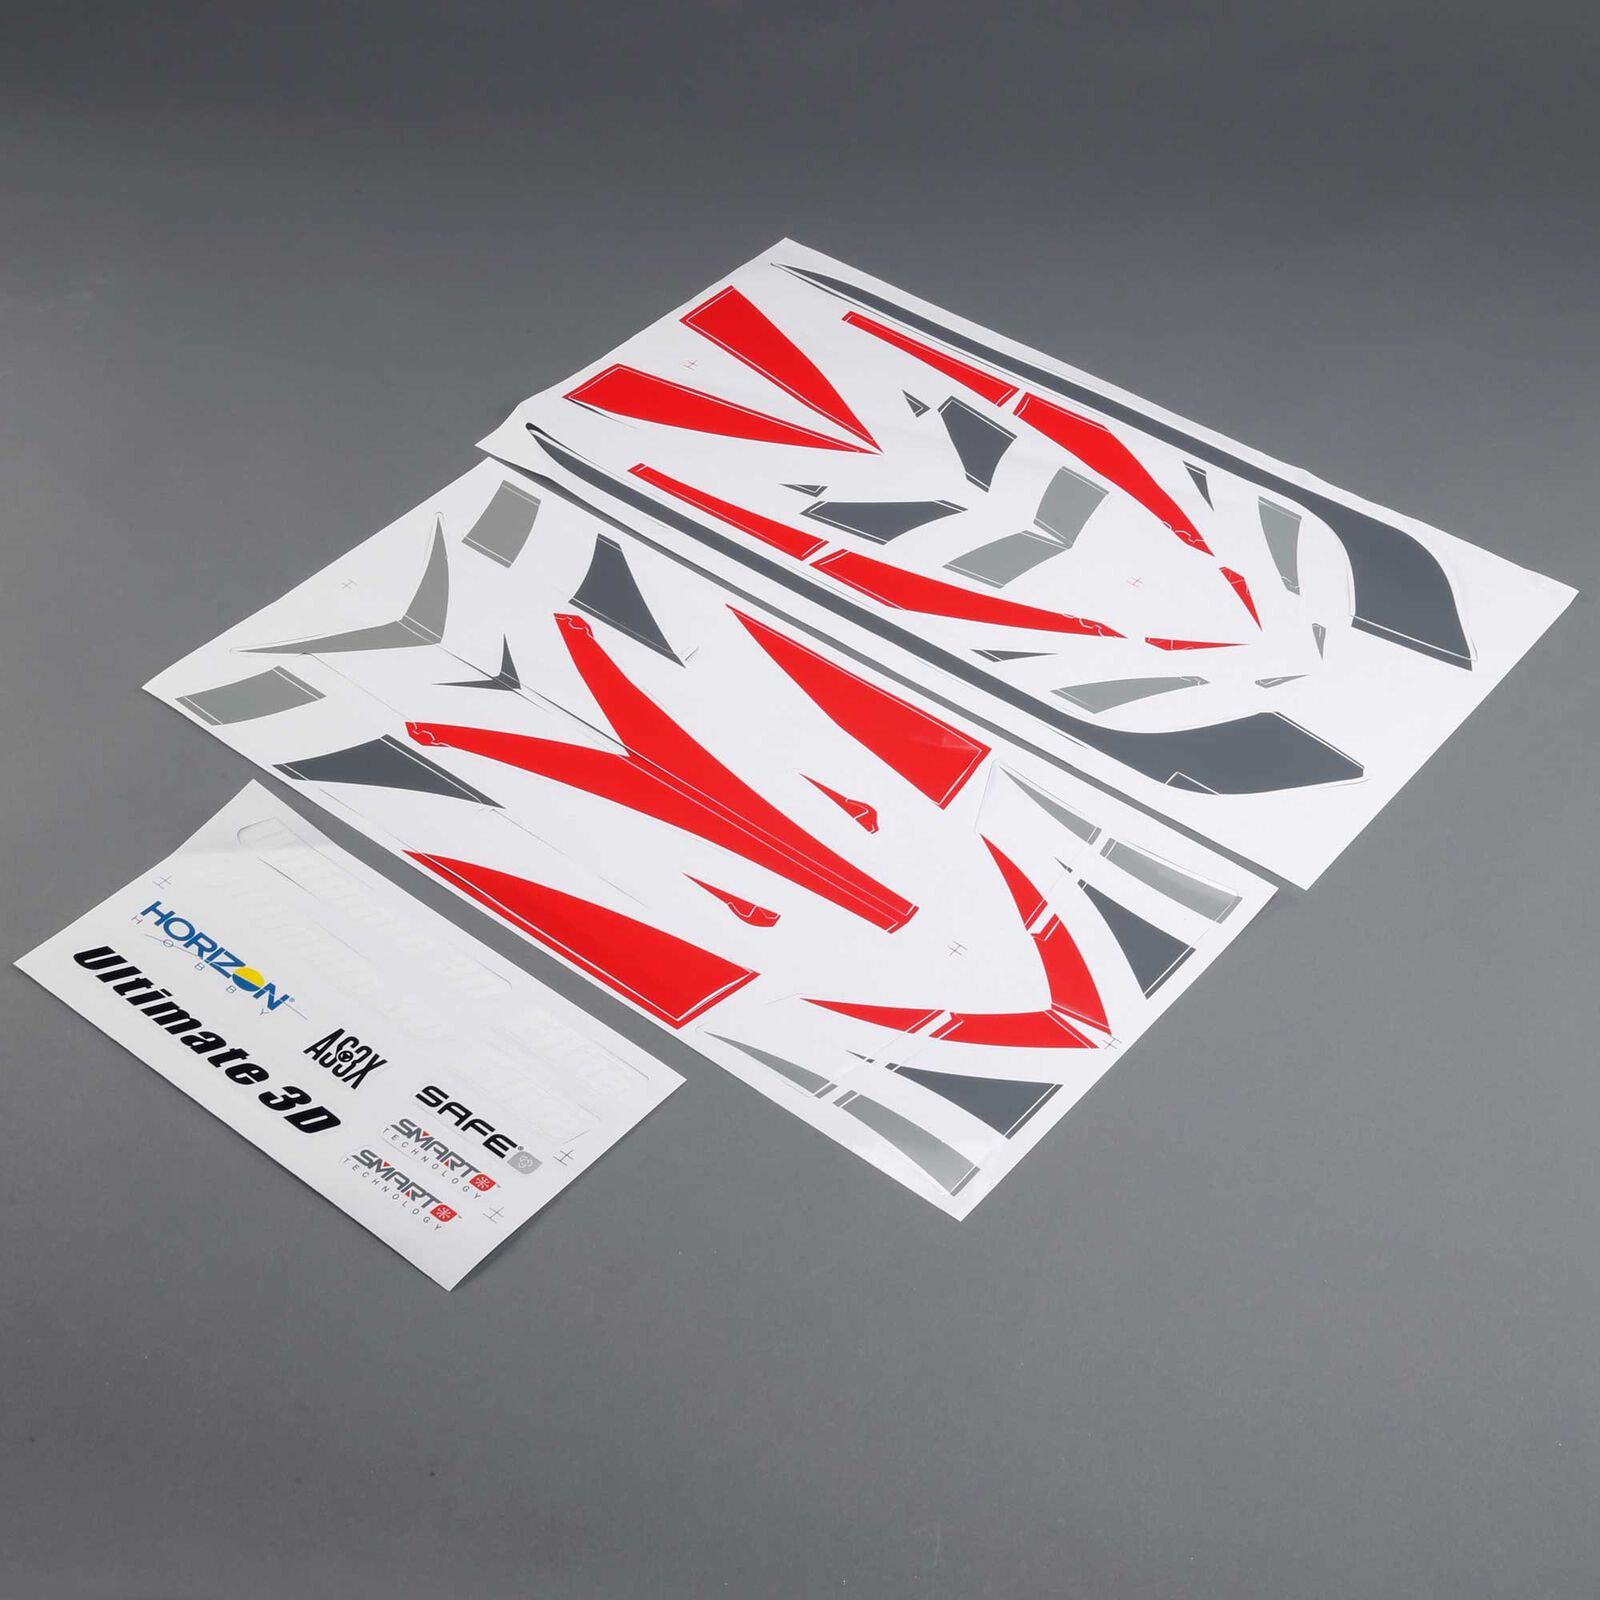 Decal Sheet: Ultimate 3D